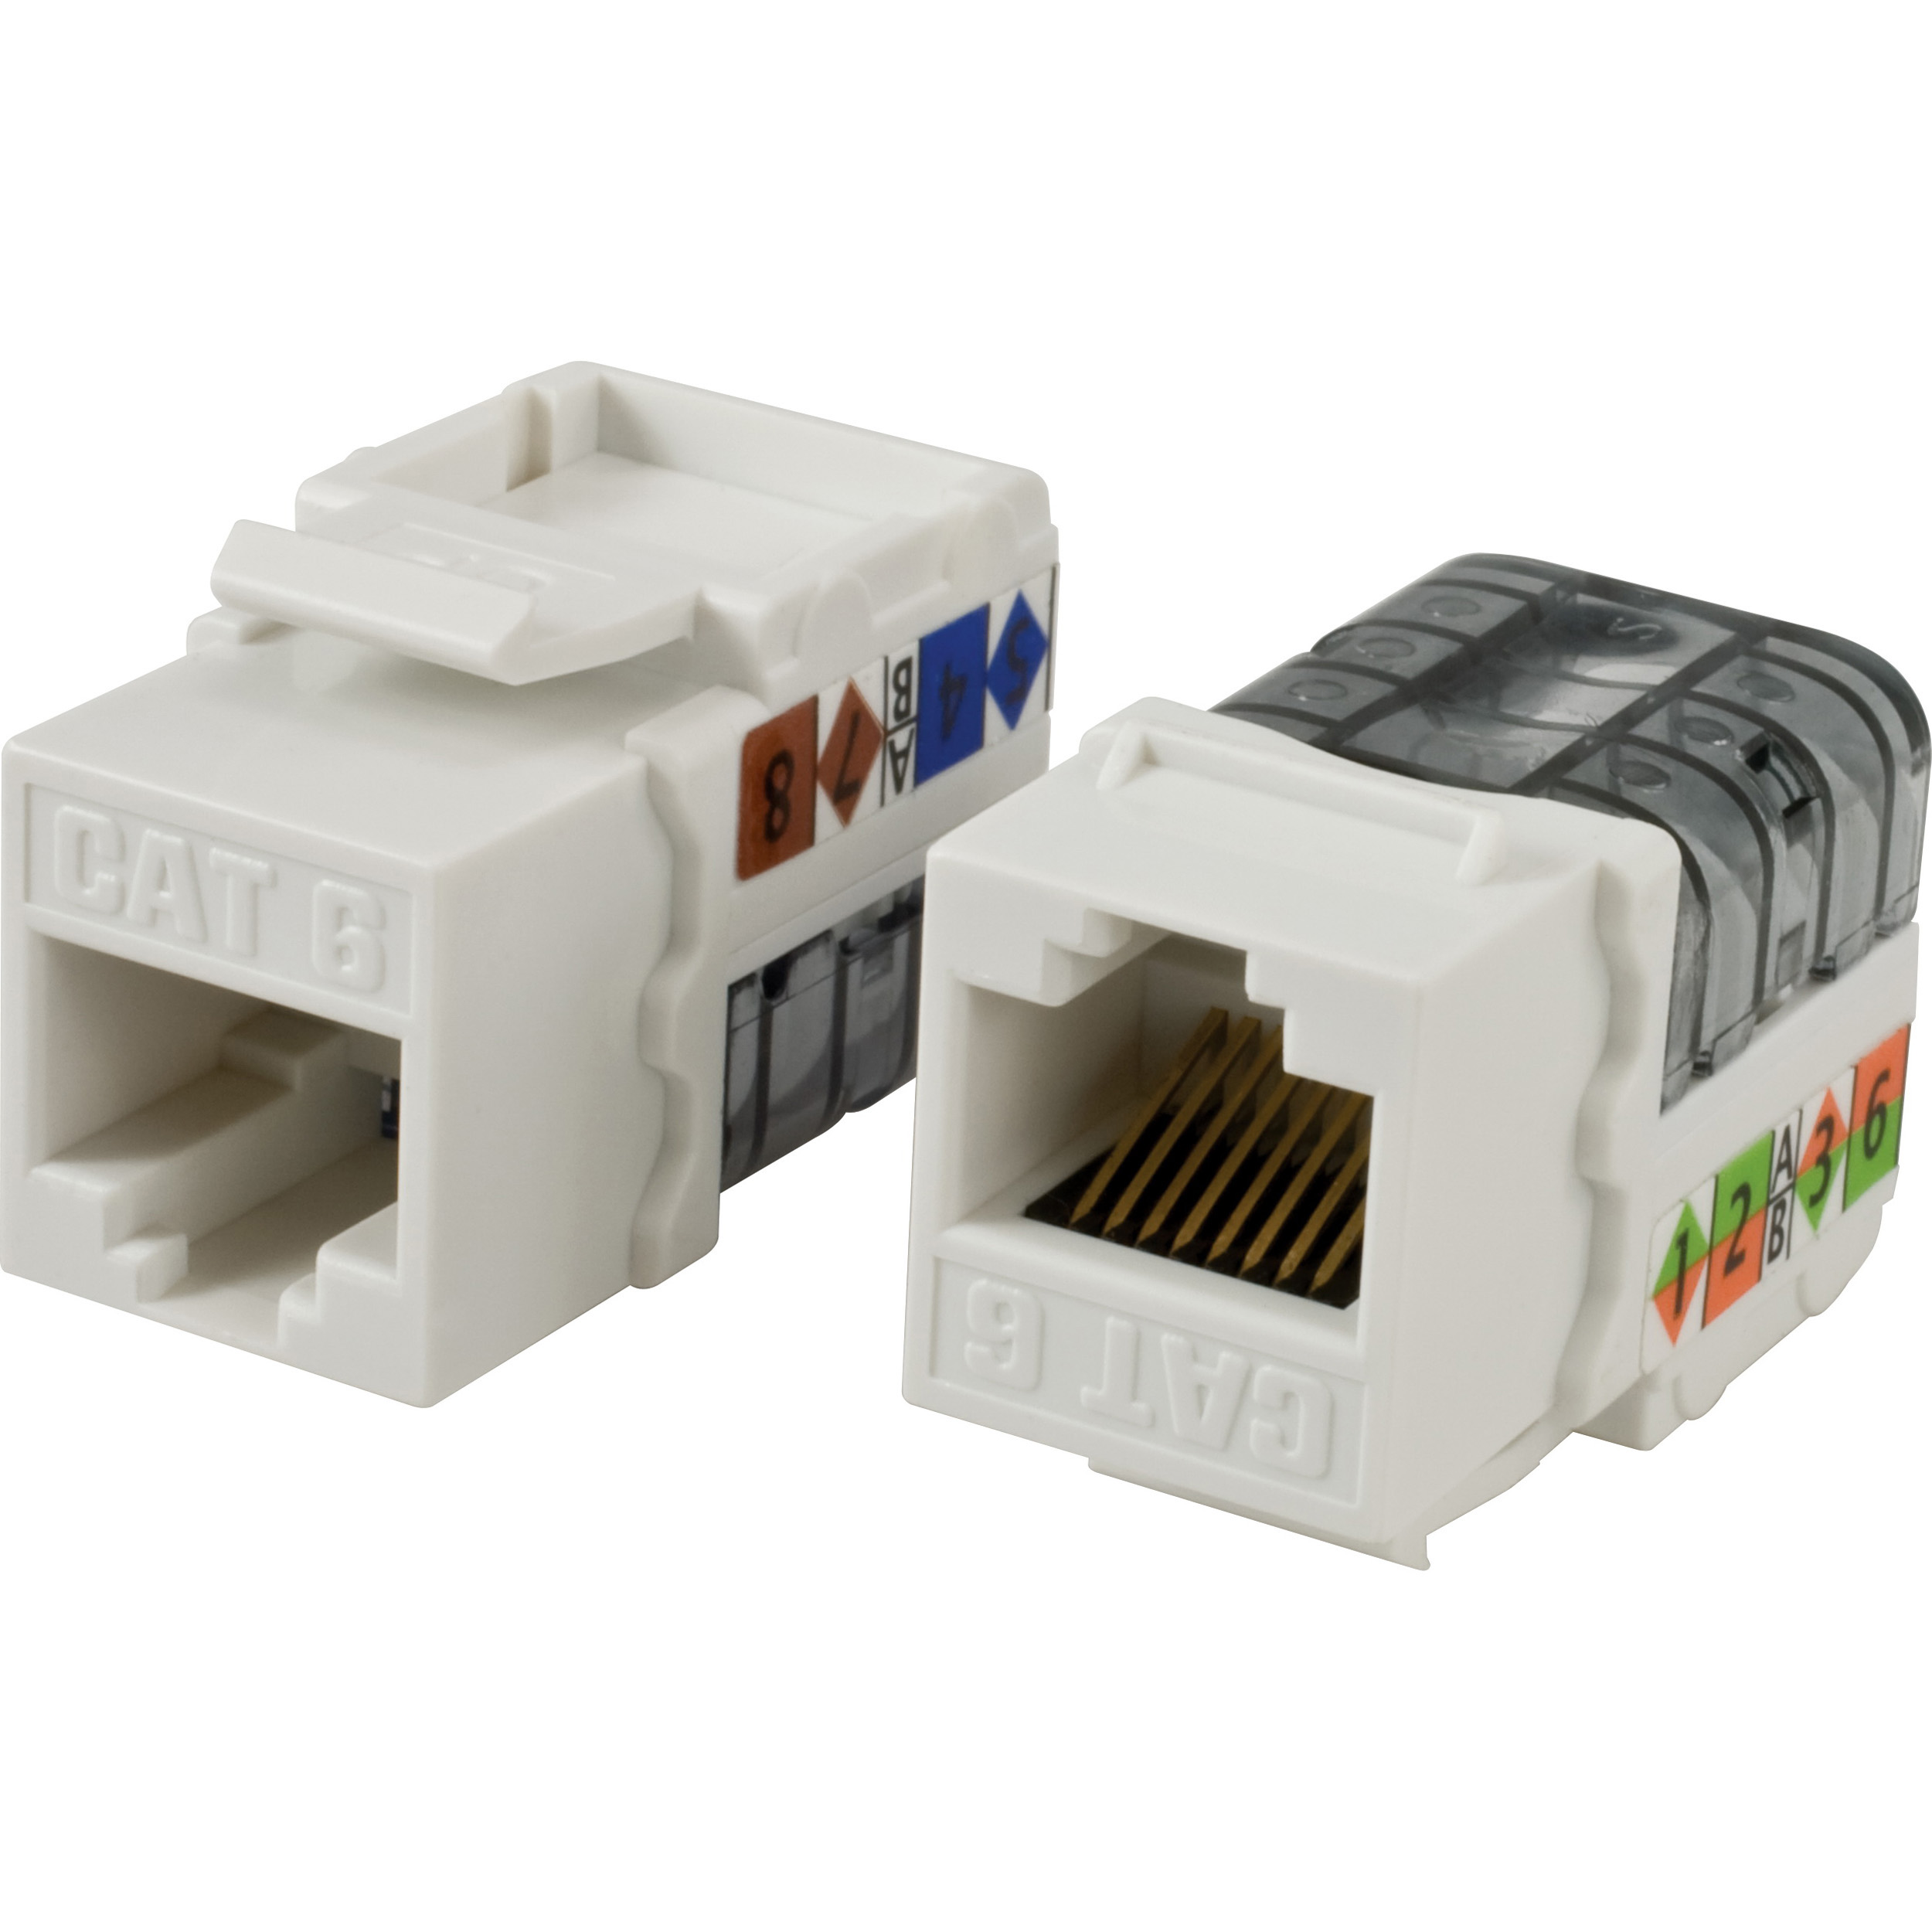 Comcables Cat.6 Network Connector - 1 X Rj-45 Female - Phosphor Bronze-plated Contacts, Gold-plated Contacts, Nickel-plated Contacts - White (cn-c6c-wht)